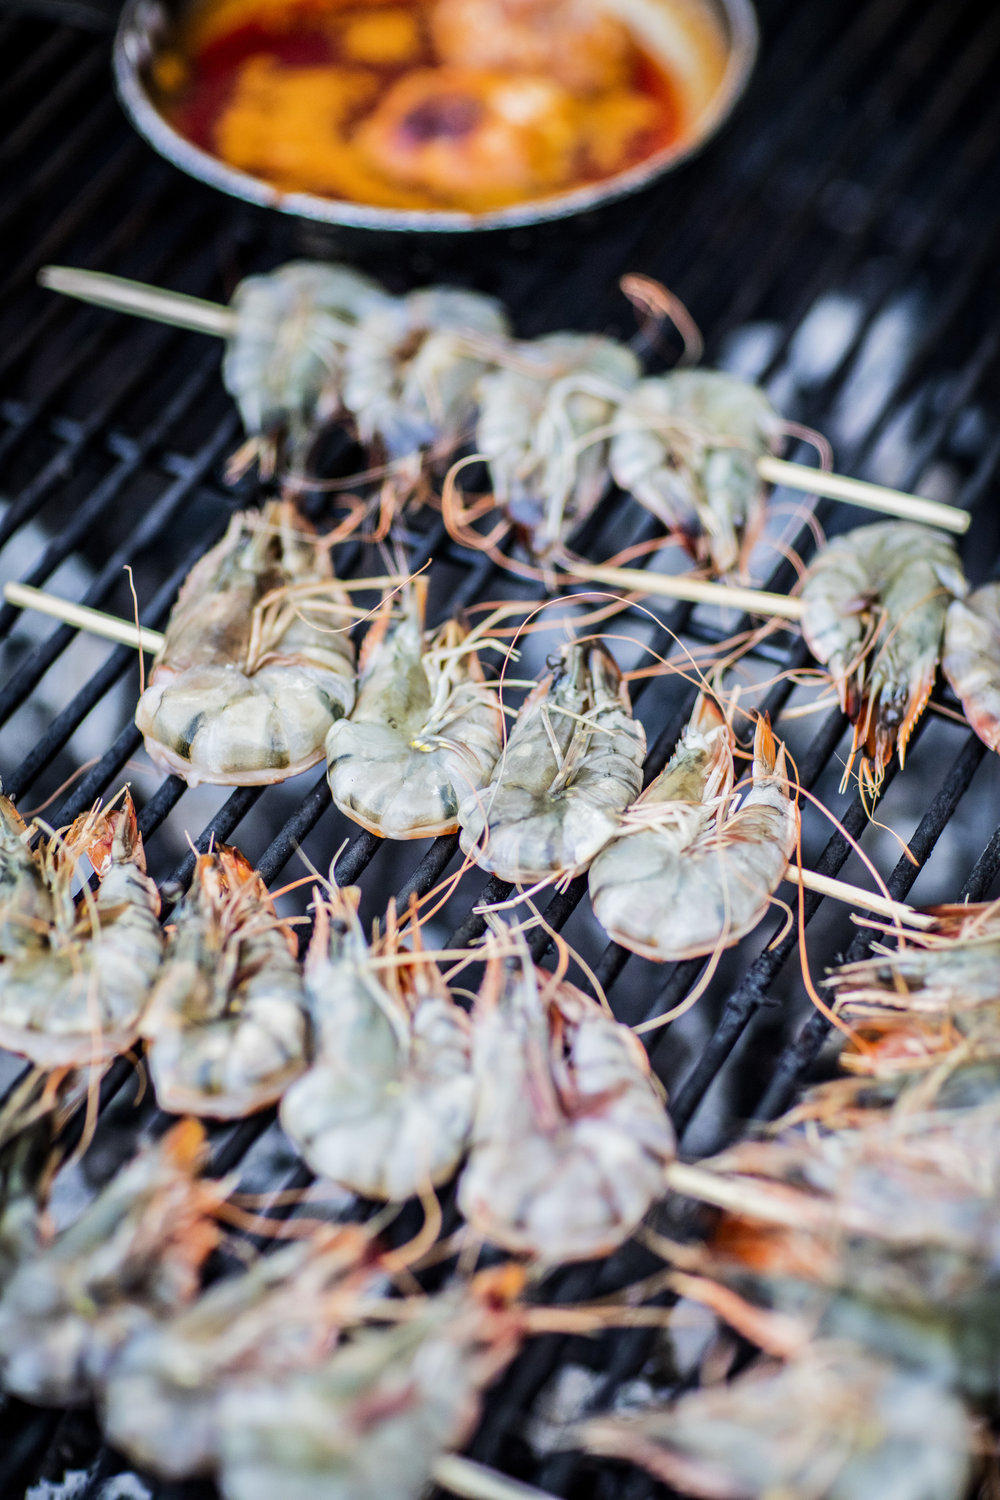 Prawns on the braai.jpg